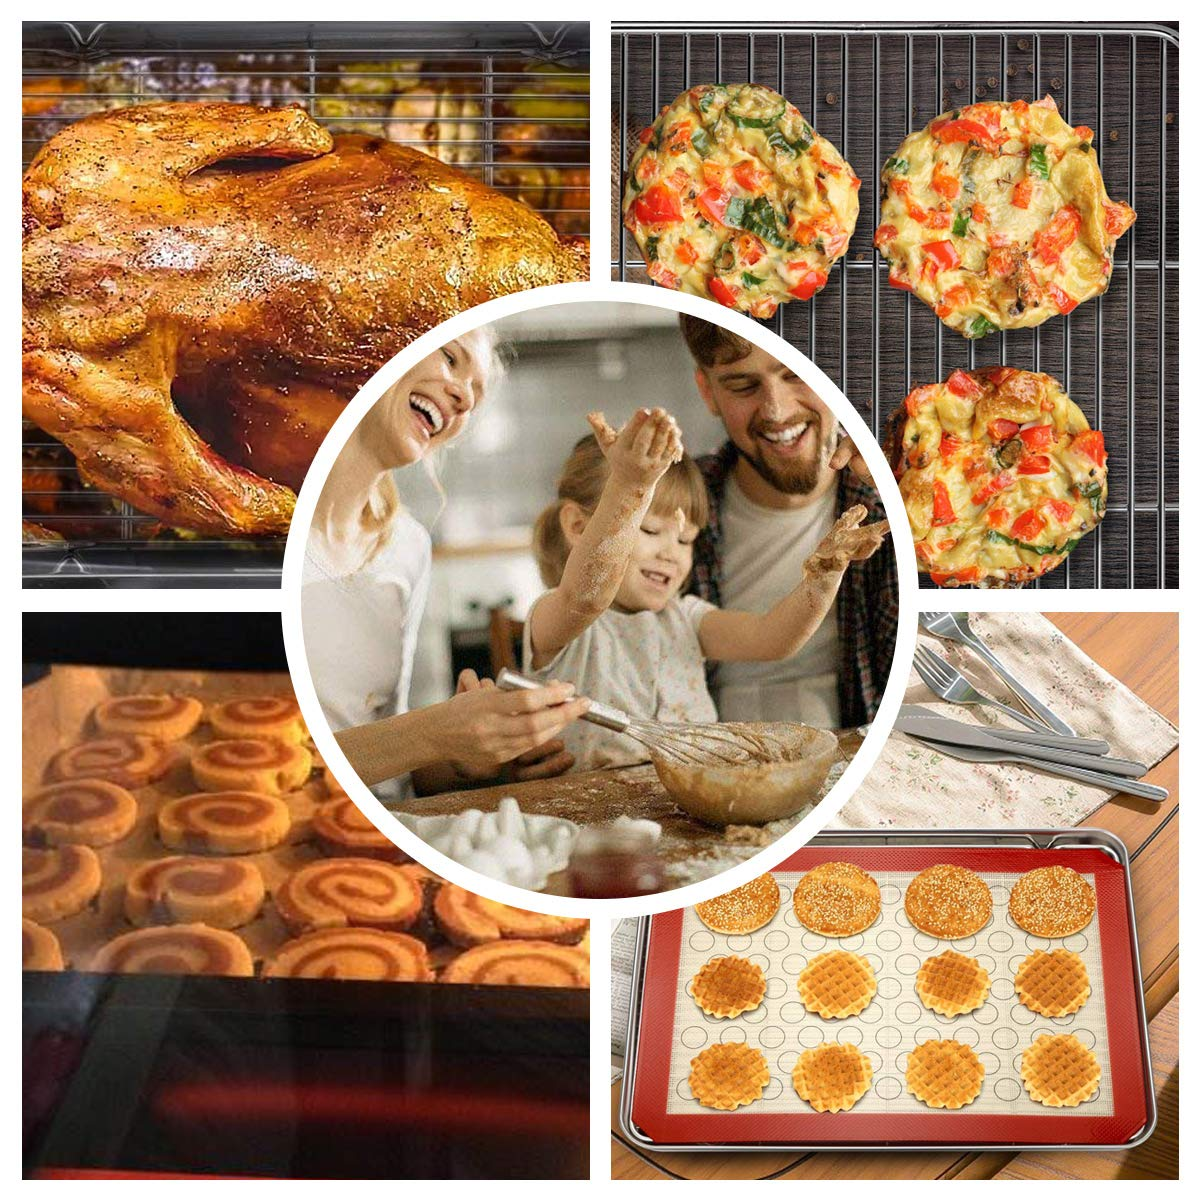 Footek Baking Sheets, Rack Set & Silicone Baking Mats, Stainless Steel Baking Pans Rectangle 16'' L×12'' W×1'' H, Non Toxic & Healthy, Mirror Polish & Easy Clean, Pack of 6 (2 Sheets + 2 Racks + 2 Mats) by Footek (Image #6)